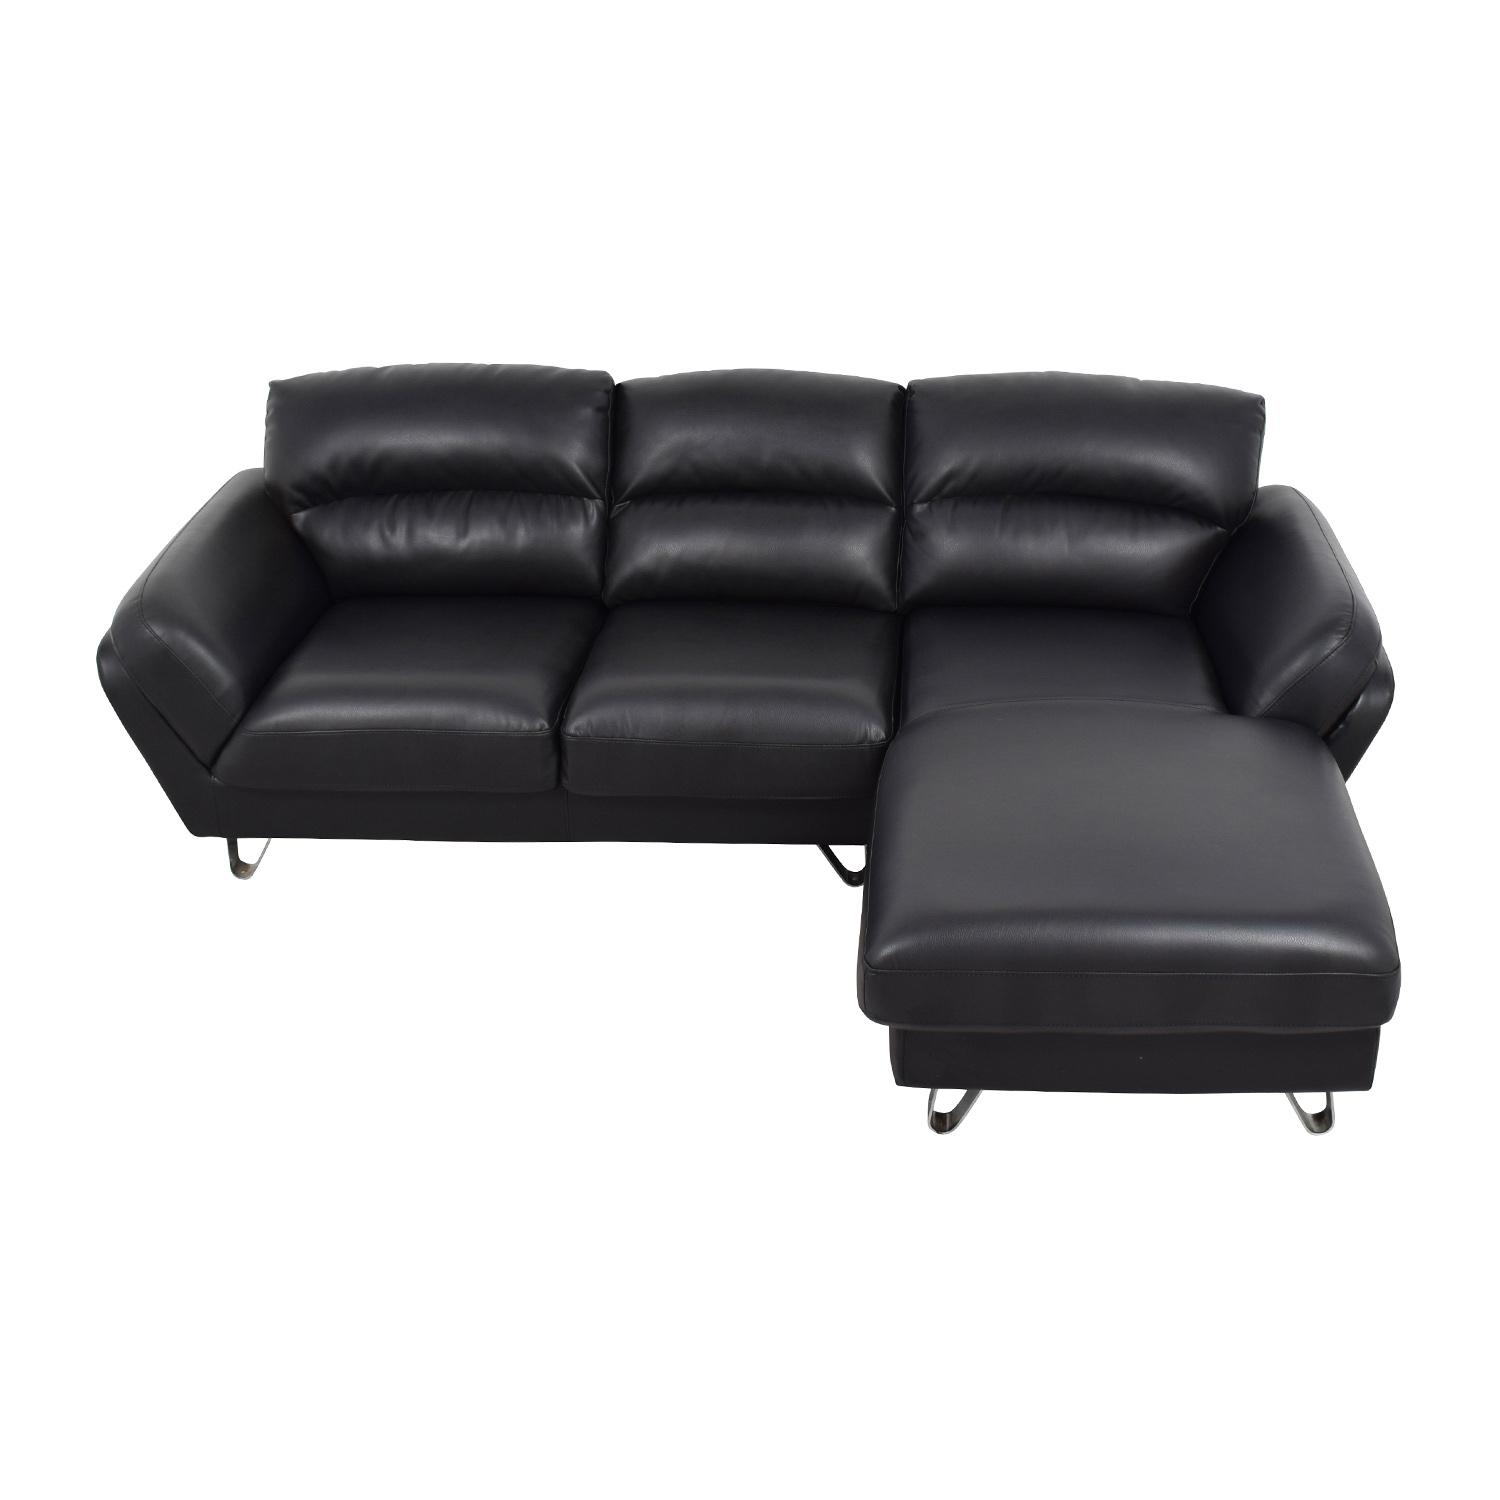 37% Off – Macy's Radley 3 Piece Fabric Chaise Sectional Sofa / Sofas With Used Sectionals (Image 1 of 20)